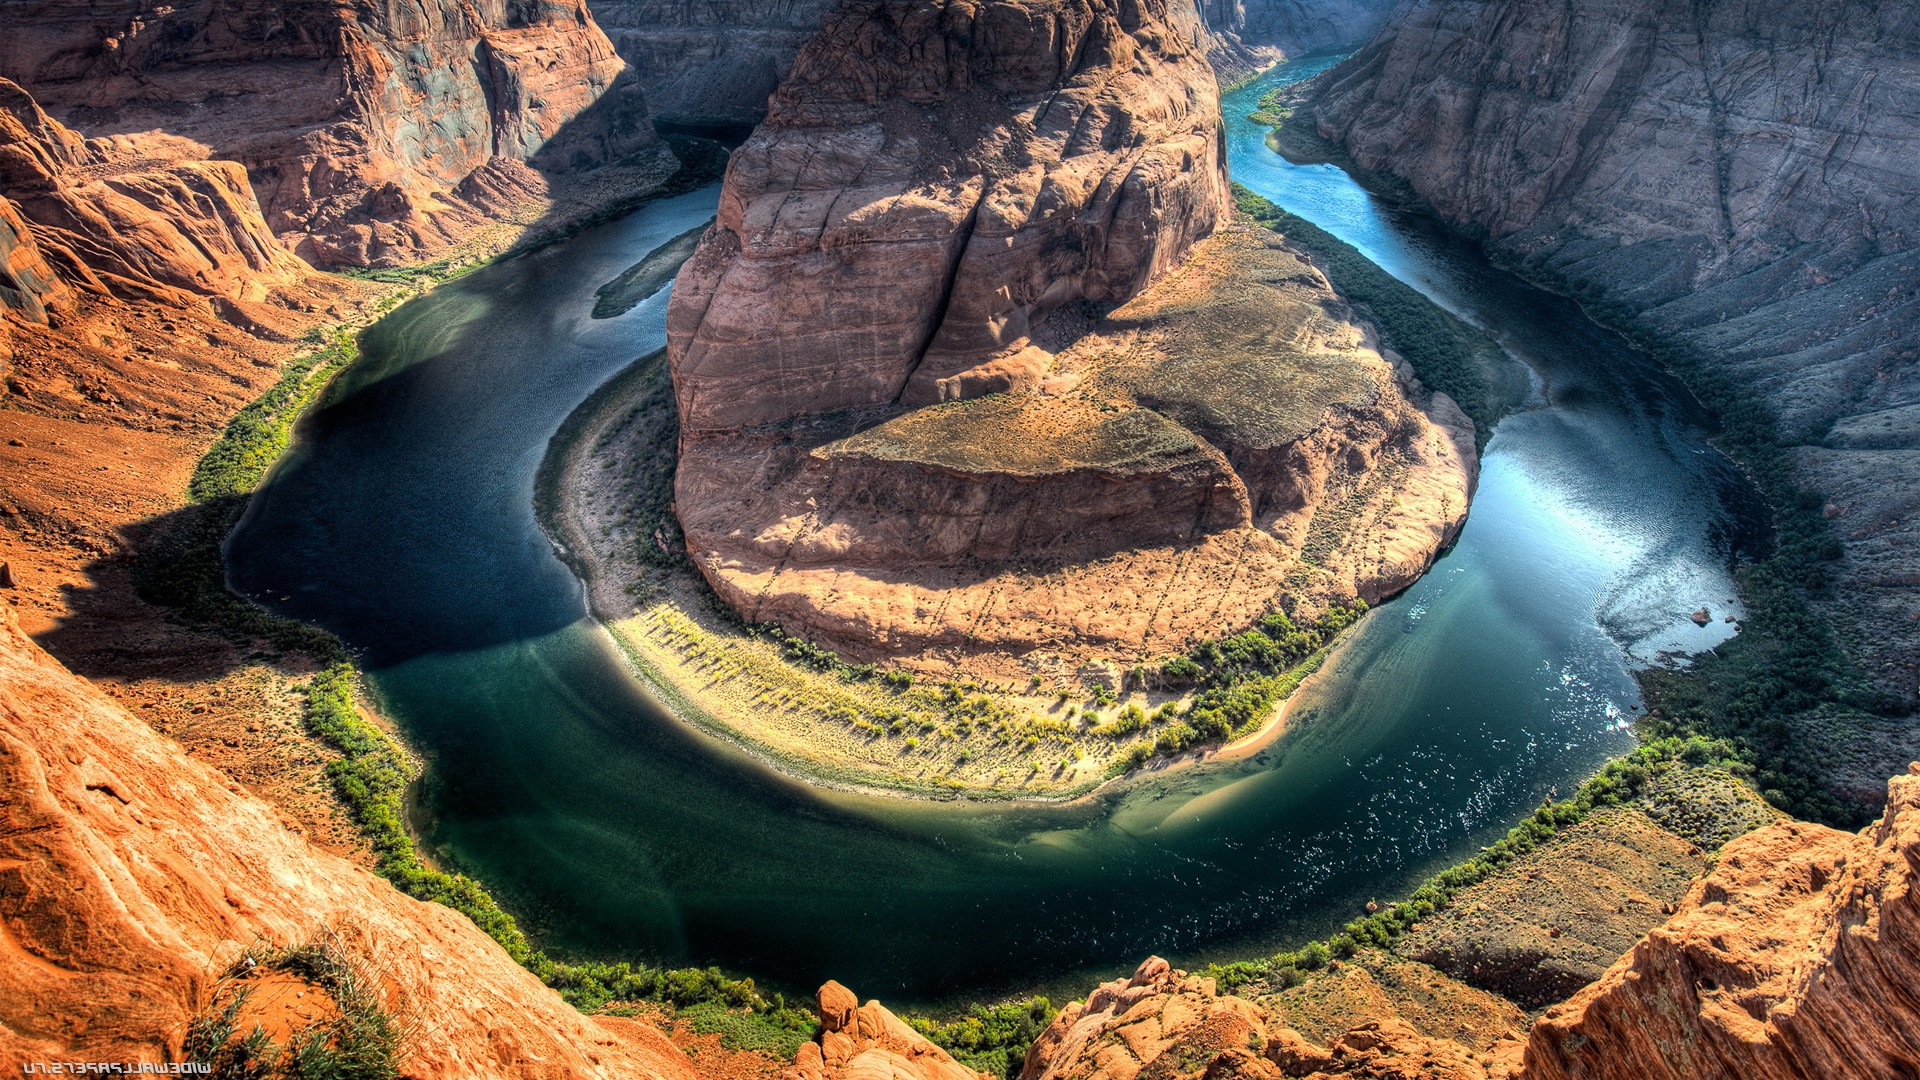 3d Wallpapers For Windows 8 Hd Free Download Nature River Canyon Horseshoe Canyon Wallpapers Hd